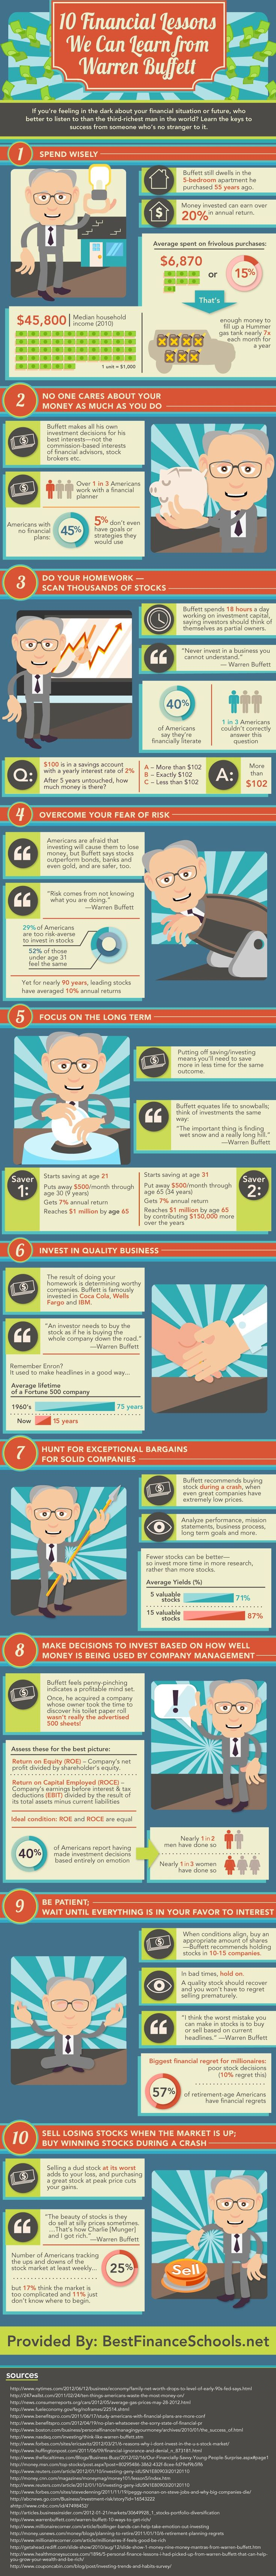 "Infographic – ""10 Financial Lessons We Can Learn from Warren Buffet"" – via Business Insider"